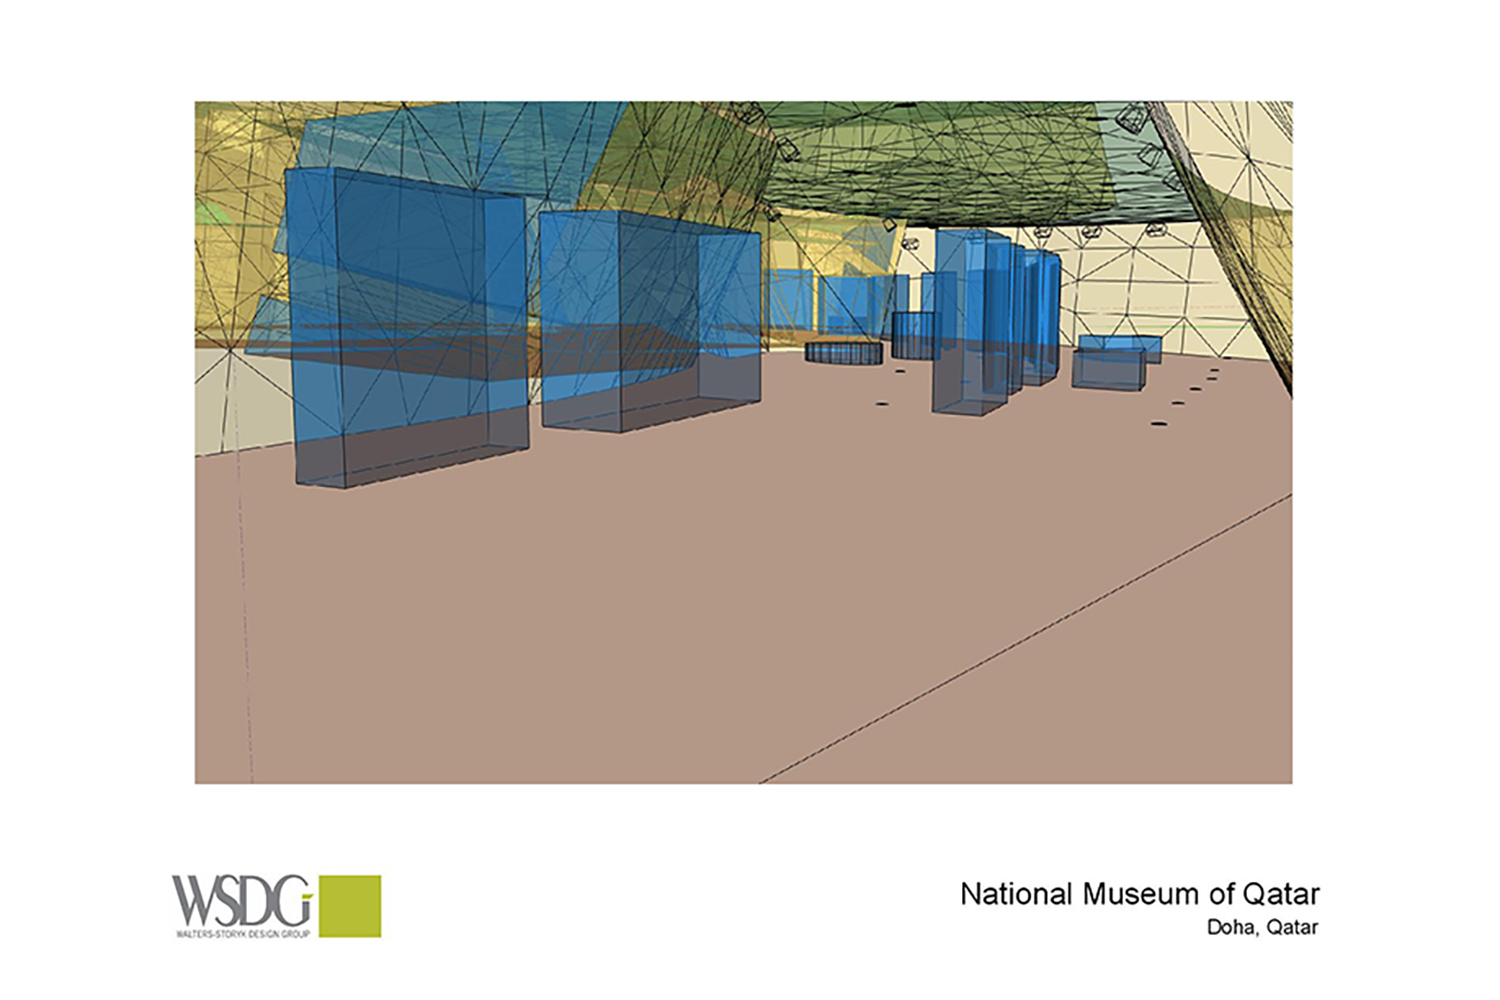 The National Museum of Qatar. WSDG was contracted to create a 3-D acoustic model of the space and make recommendations regarding appropriate speaker usage and placement. Acoustic 3D Model Drawing 1.